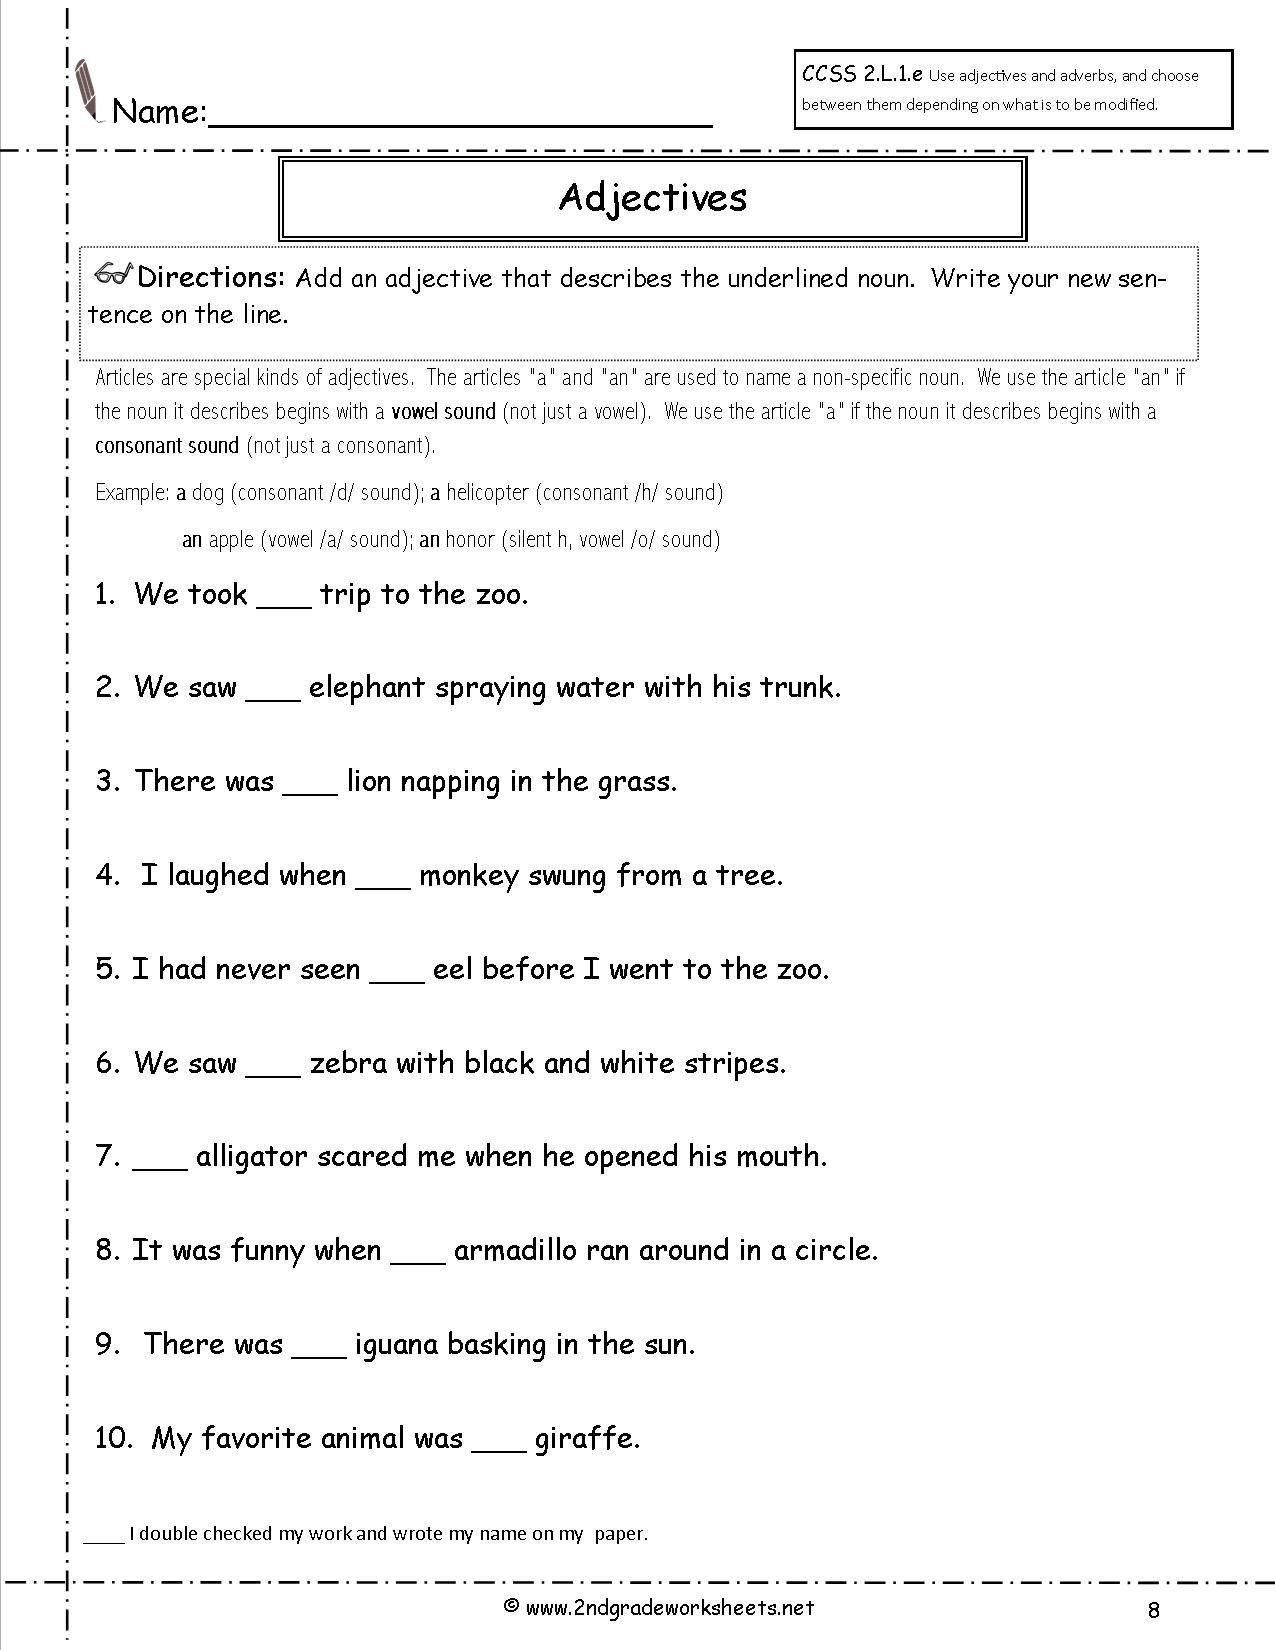 Adjectives And Adverbs Worksheet With Images